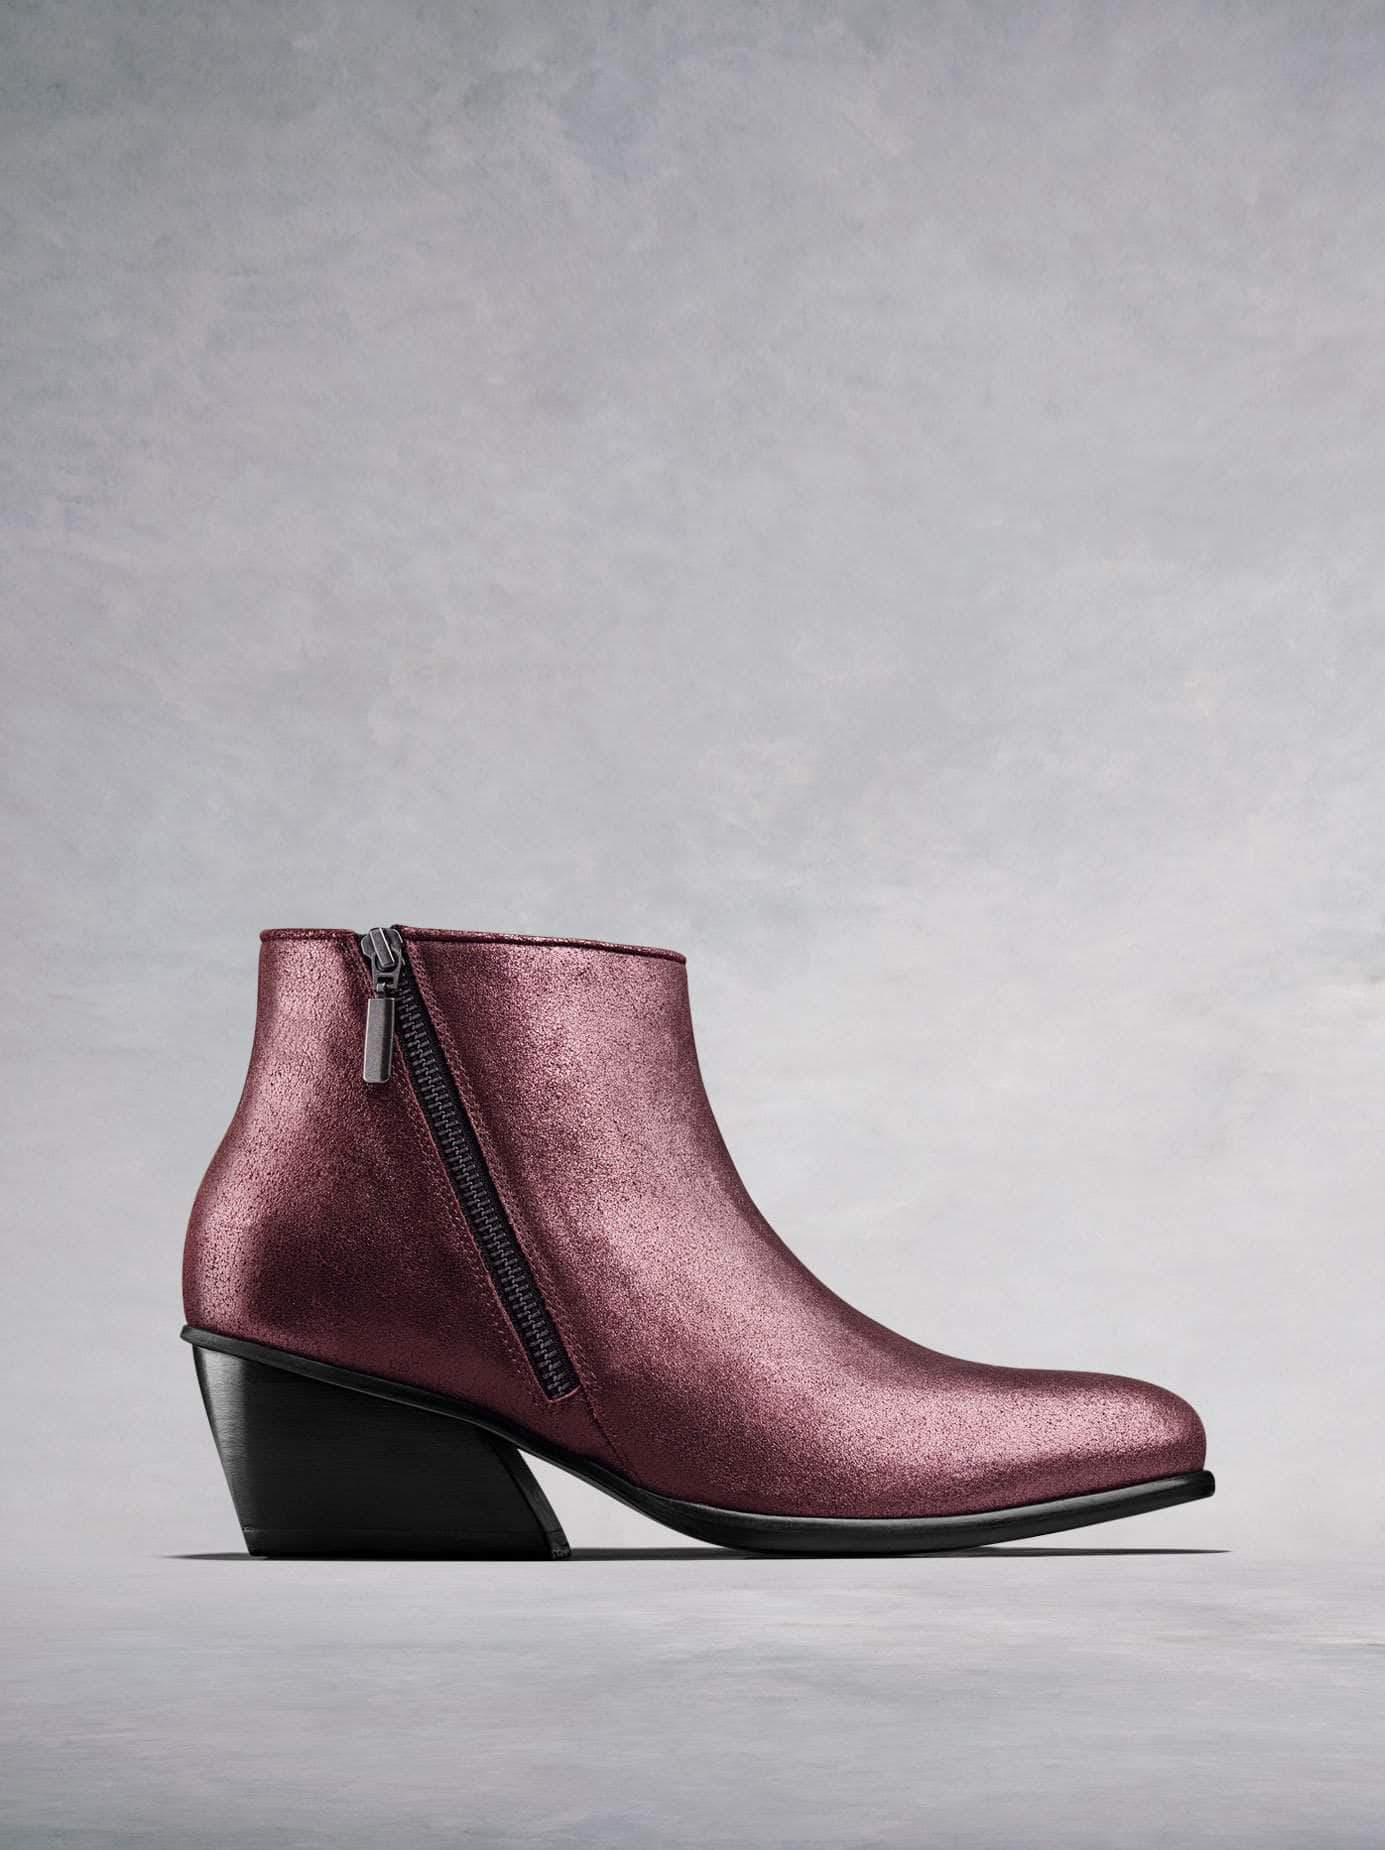 Renata, our on-trend ankle boot with angular heel and diagonal zip in plum metallic leather. Stand-out style. Available in our standard or wide fit.